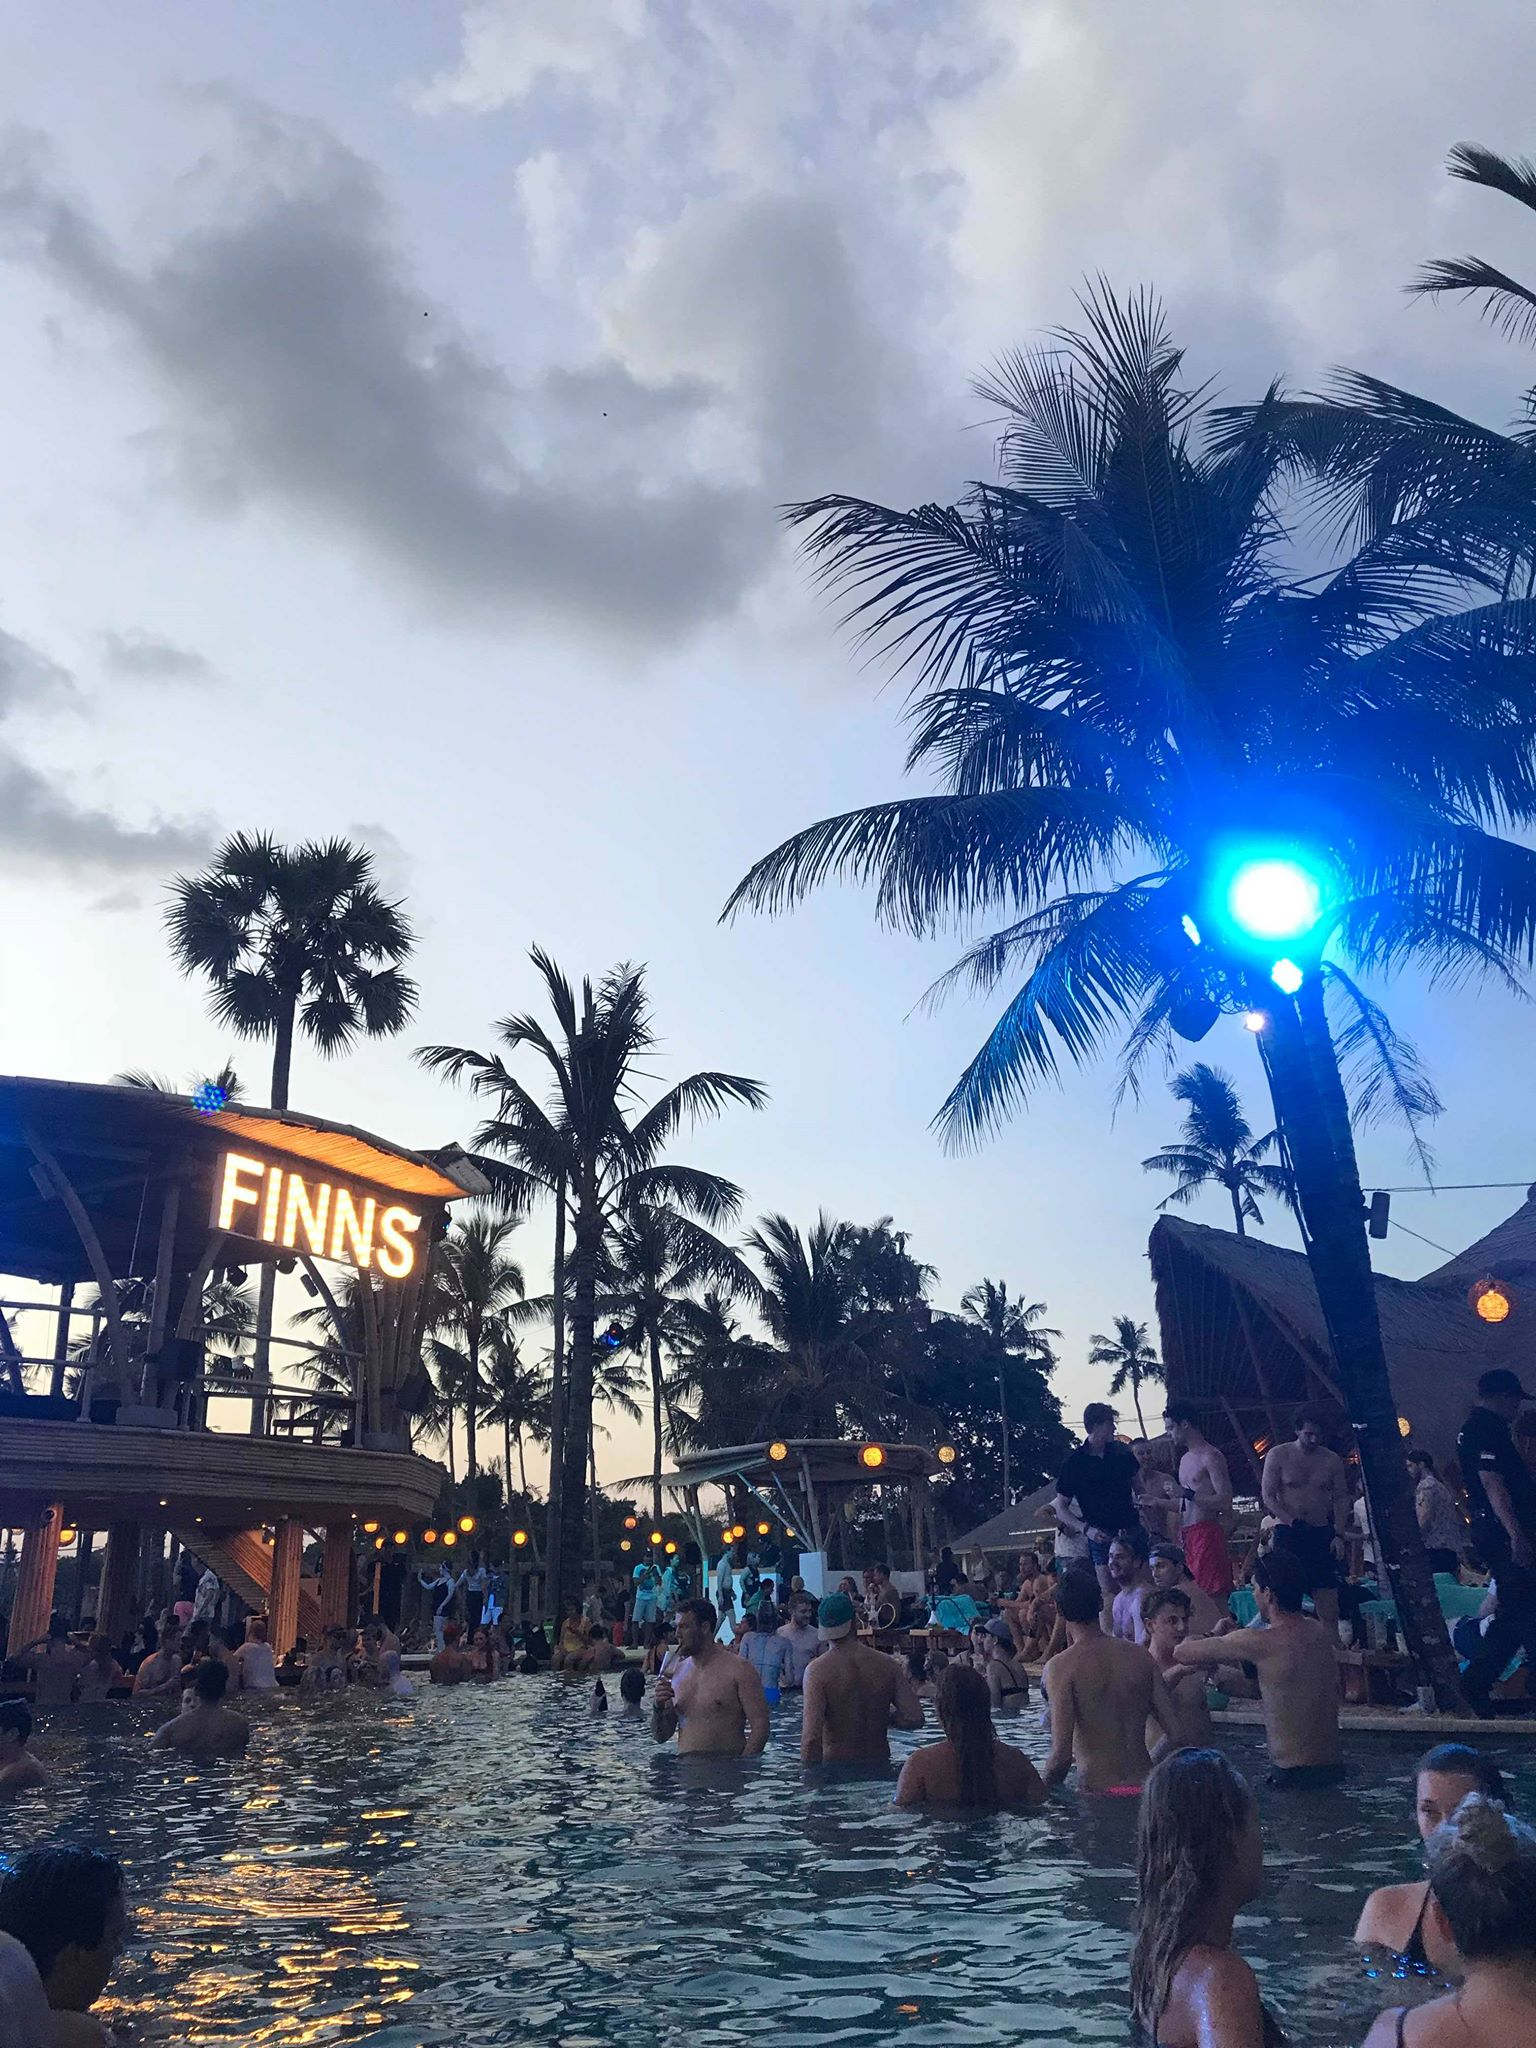 Finns Beach Club                           p.c.  @travelocindy